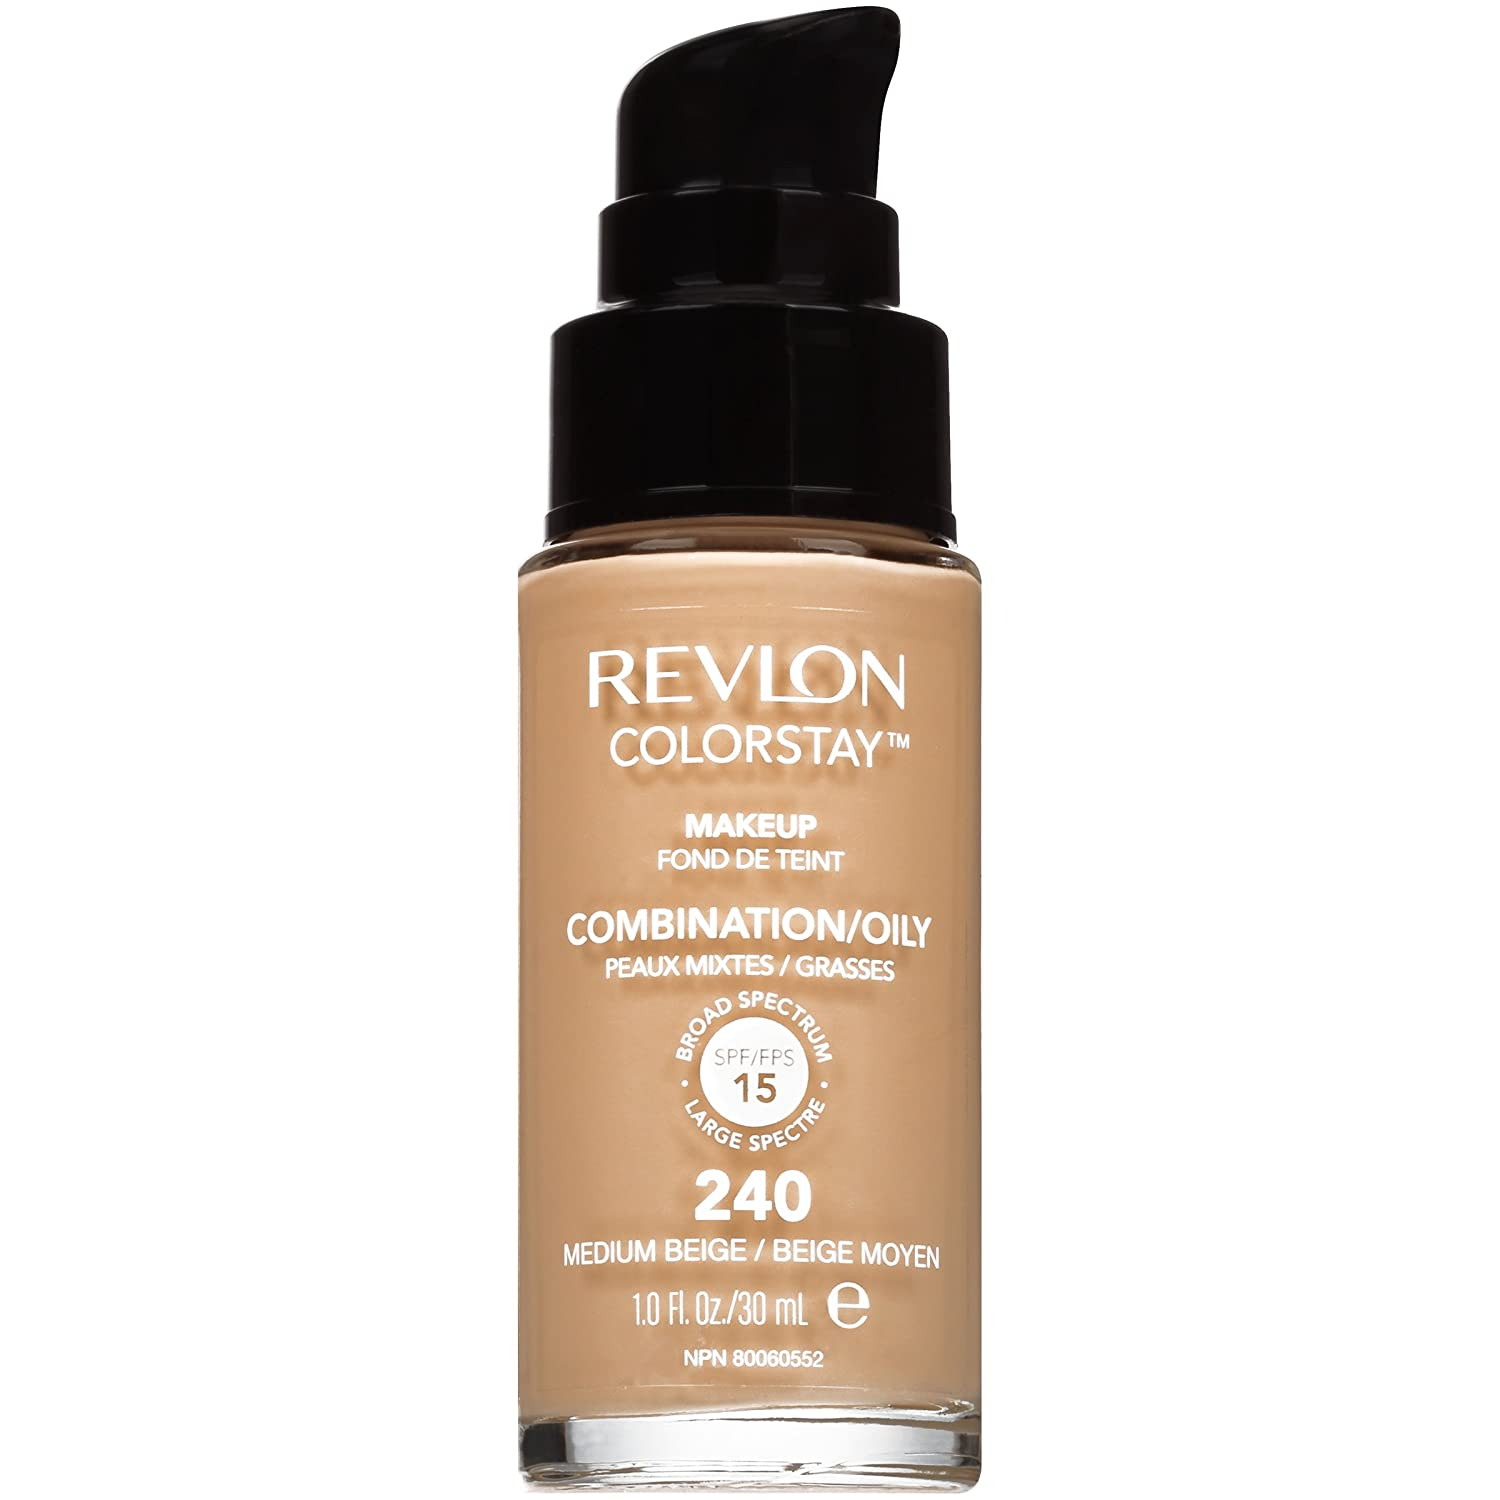 Revlon Colorstay Makeup For Combi Oily Skin Medium Beige 240 1er Touch And Glow Face Powder 43 Gr Pack 1 X 30 G Beauty